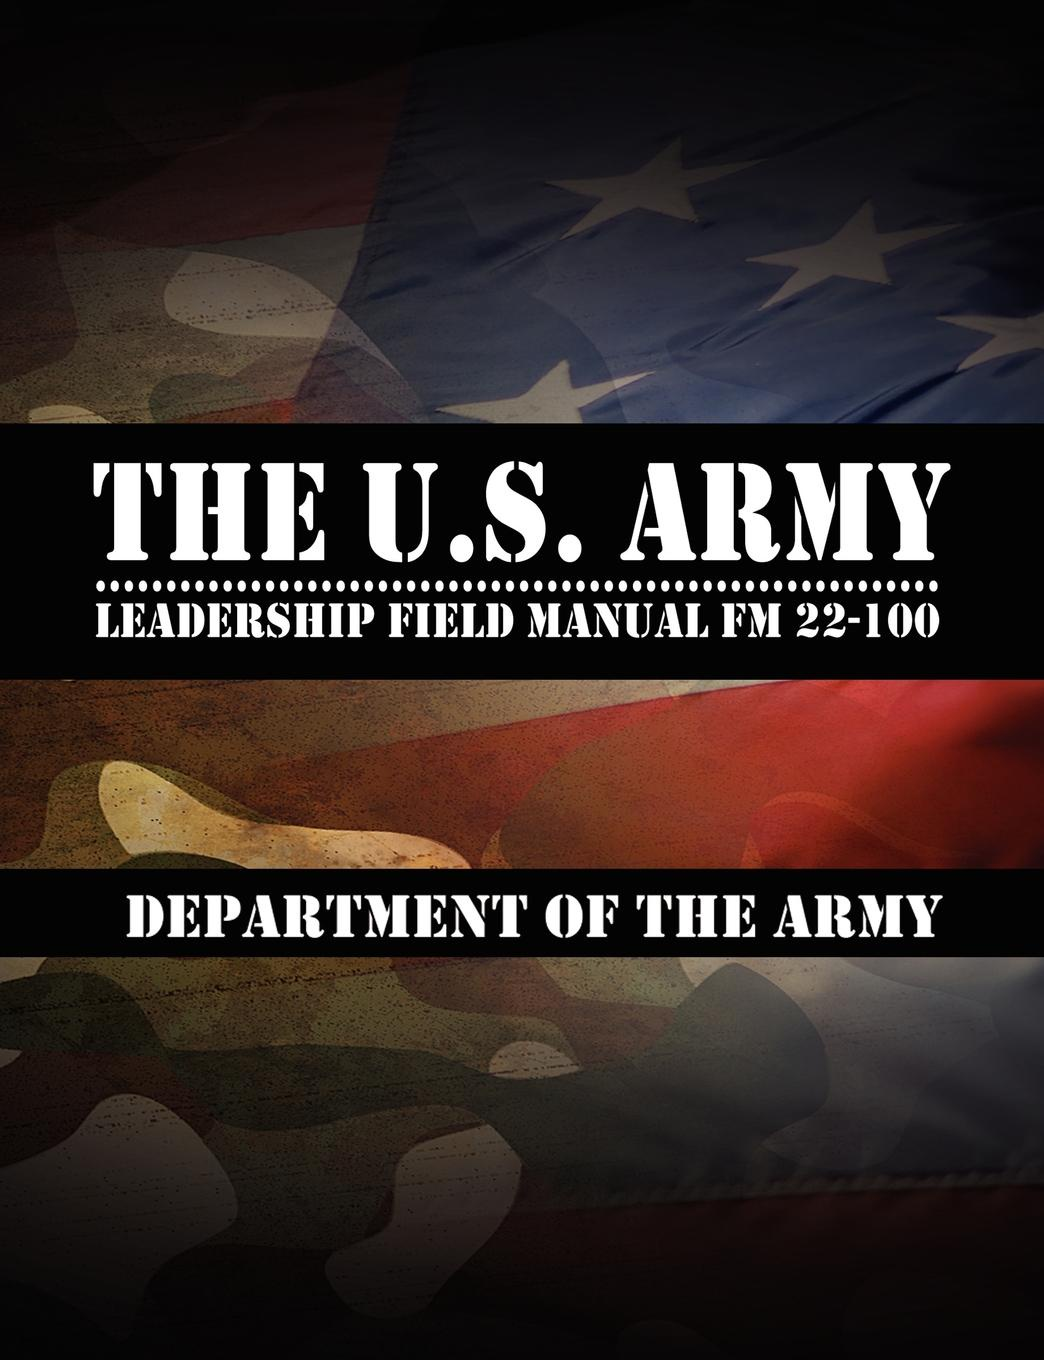 Leadership Center for Army and Us Army The U.S. Army Leadership Field Manual FM 22-100 jordan d lewis trusted partners how companies build mutual trust and win together